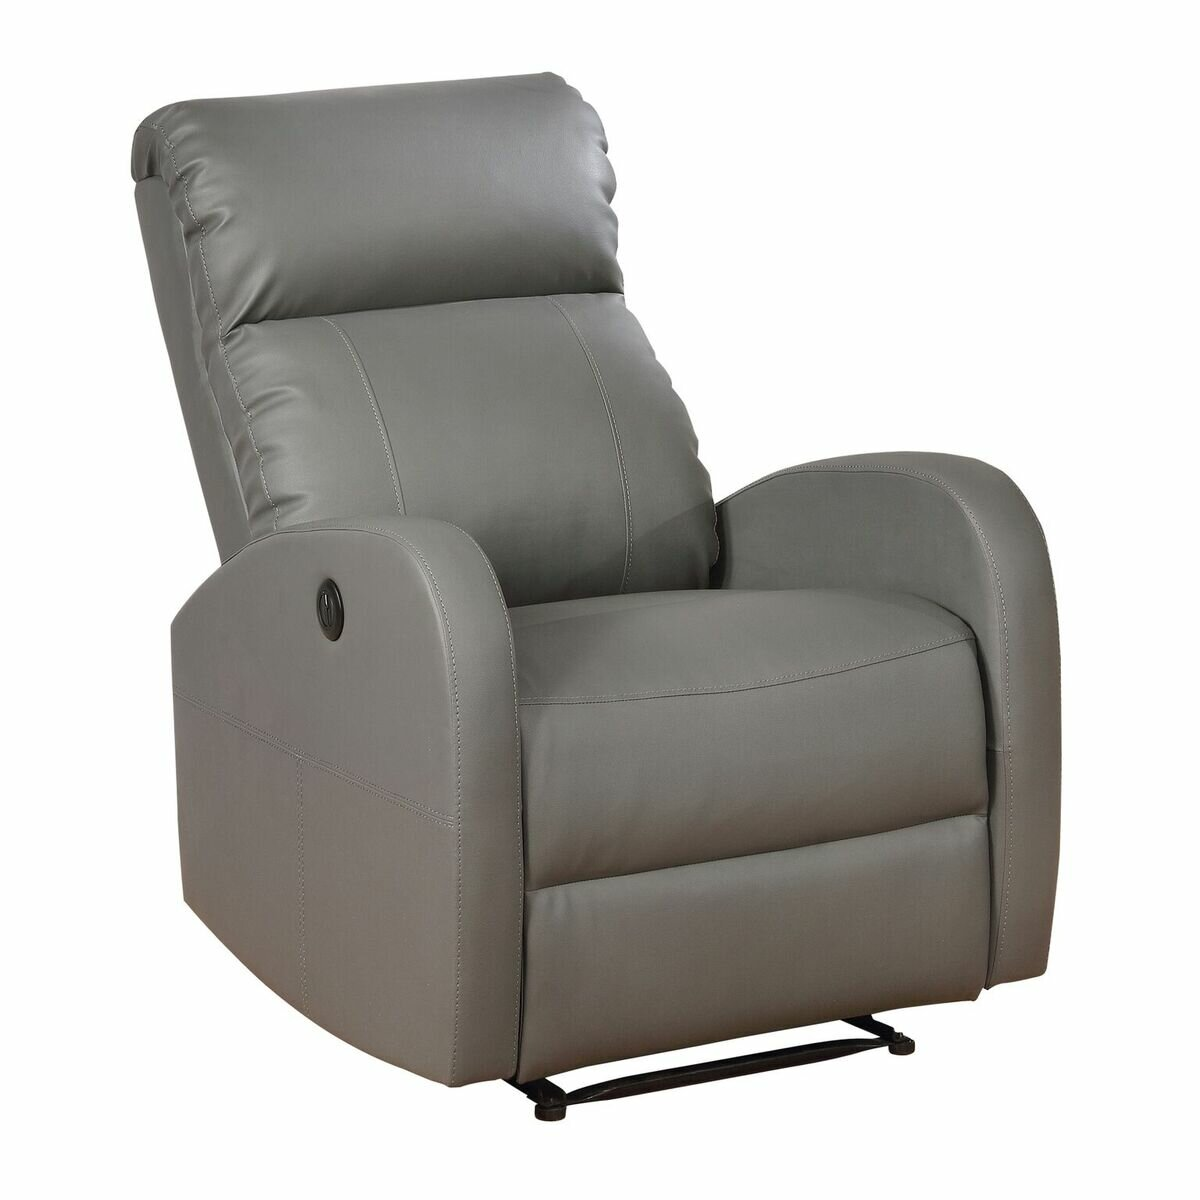 dp bonded amazon rocker black com kitchen living chair leather recliner brown bl room dining